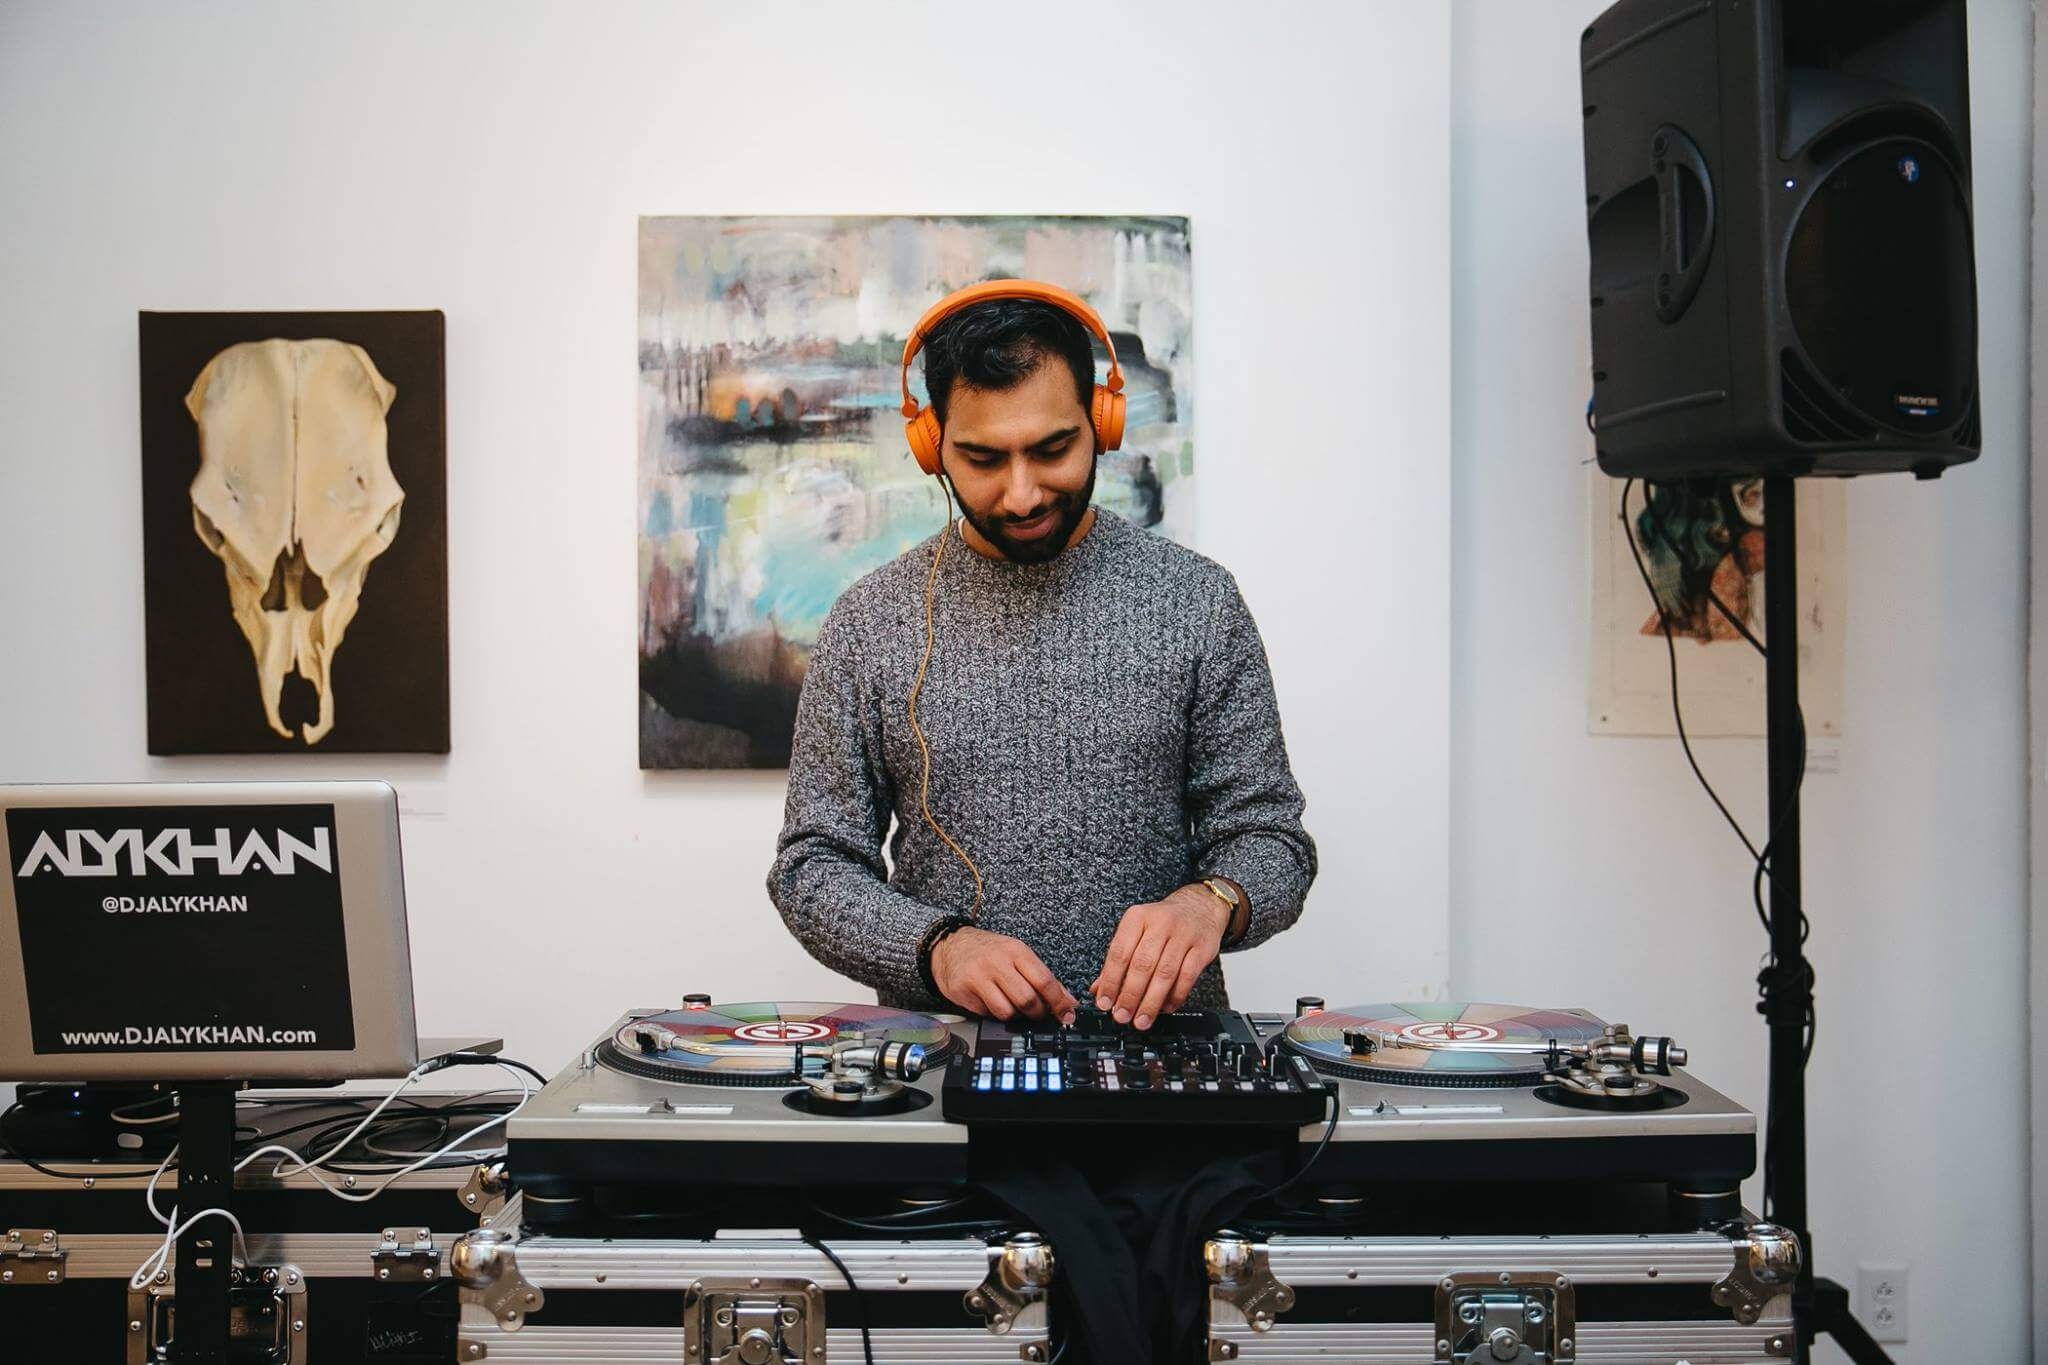 DJ Alykhan encourages you to be a part of Rochester's engaging nightlife.